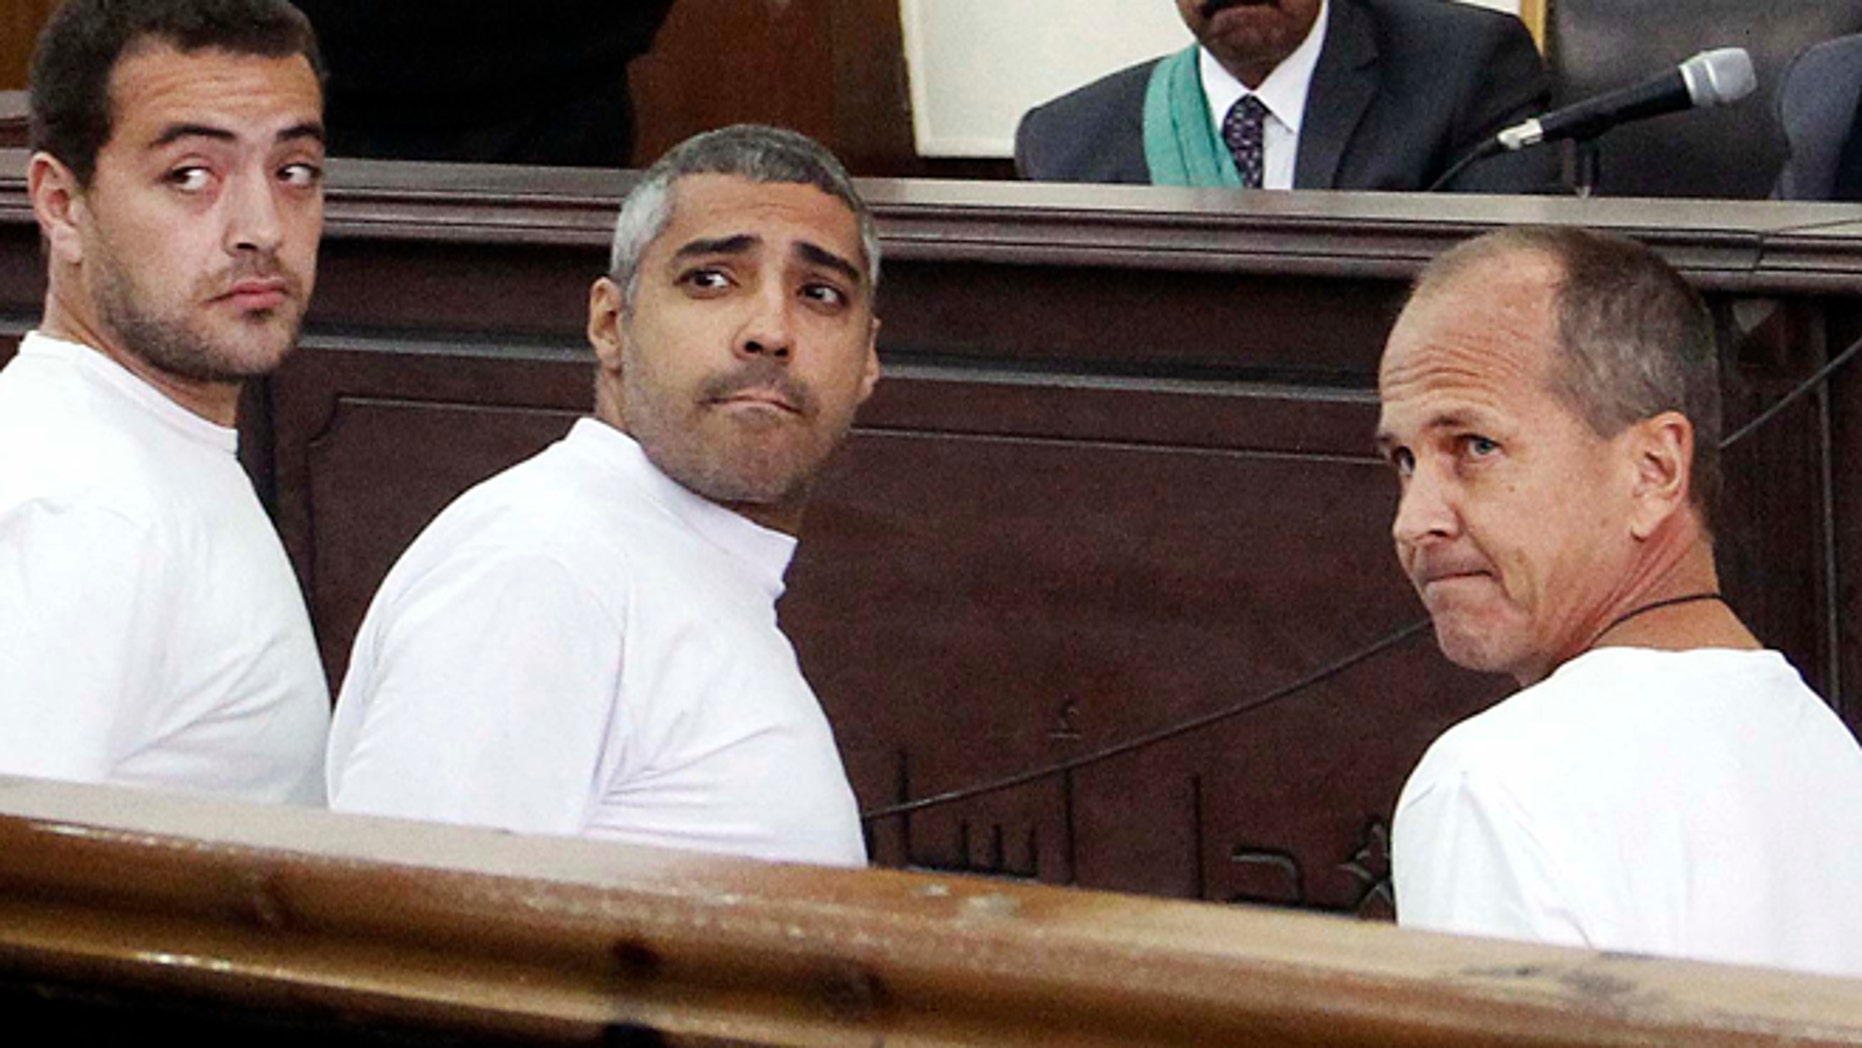 March 31, 2014: In this file photo, Al-Jazeera English producer Baher Mohamed, left, Canadian-Egyptian acting Cairo bureau chief Mohammed Fahmy, center, and correspondent Peter Greste, right, appear in court along with several other defendants during their trial on terror charges, in Cairo, Egypt. An Egyptian court on Monday, June 23, 2014, convicted three Al-Jazeera journalists and sentenced them to seven years in prison on terrorism-related charges after a trial dismissed by rights groups as a politically motivated sham. The verdict brought a landslide of international condemnation and calls for Egyptian President Abdel-Fattah el-Sissi to intervene. El-Sissi, on Tuesday said he will not interfere in court rulings, sparking an international outcry.